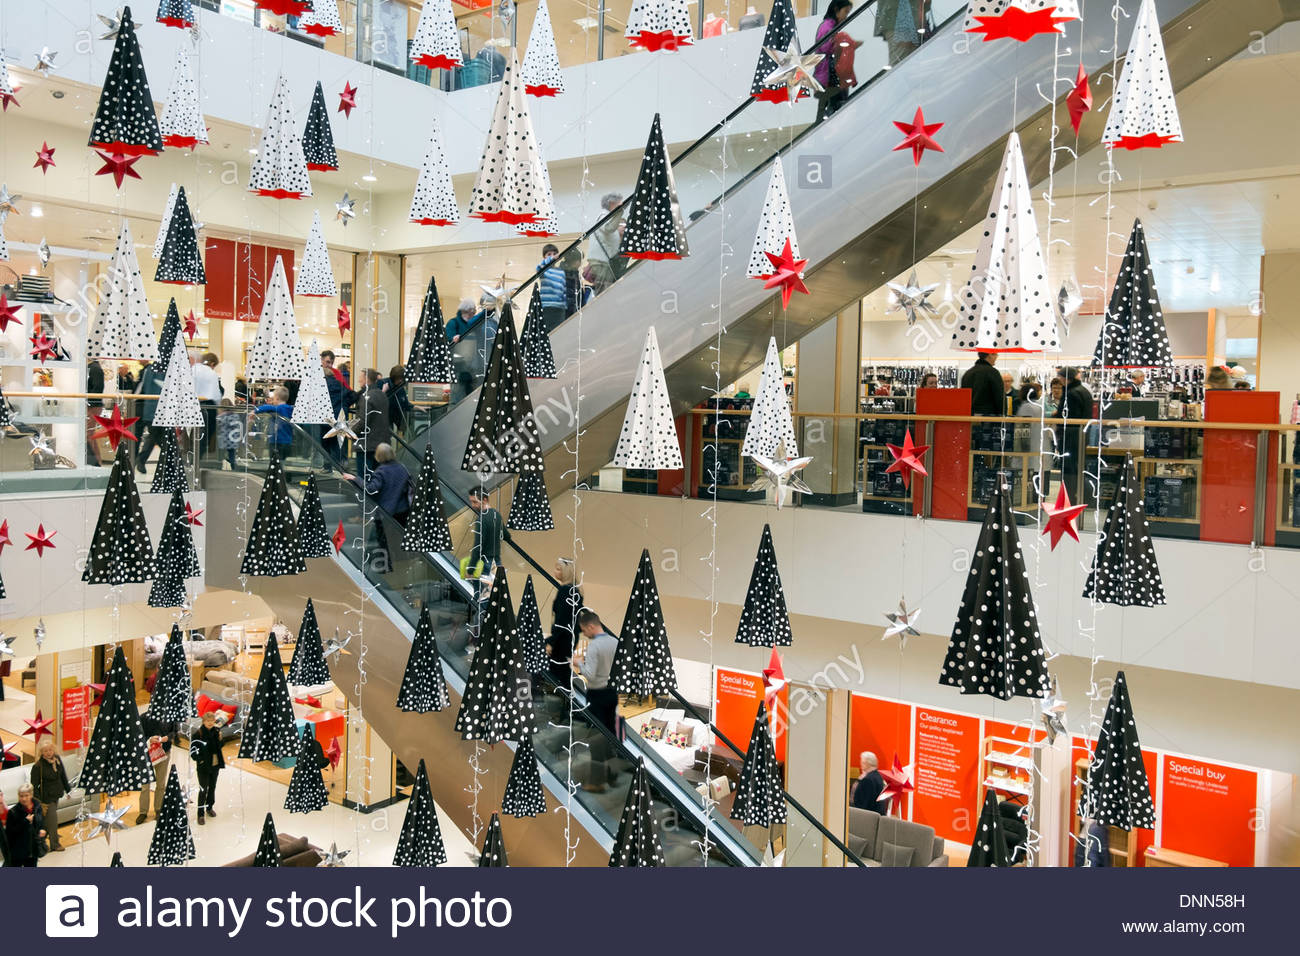 christmas decorations in a john lewis store bristol uk stock image - Christmas Decoration Store